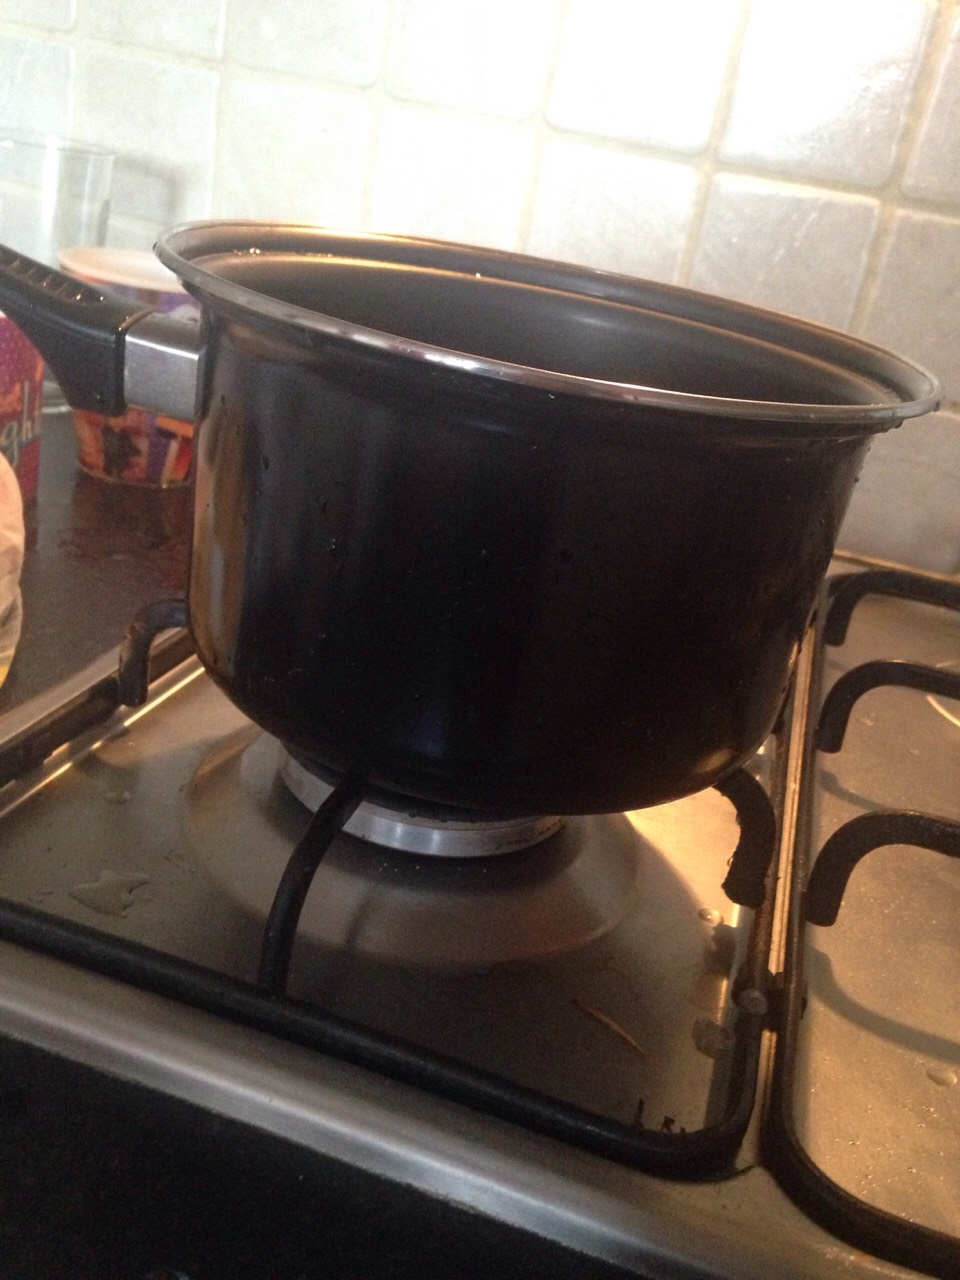 Put your pan on the biggest hob